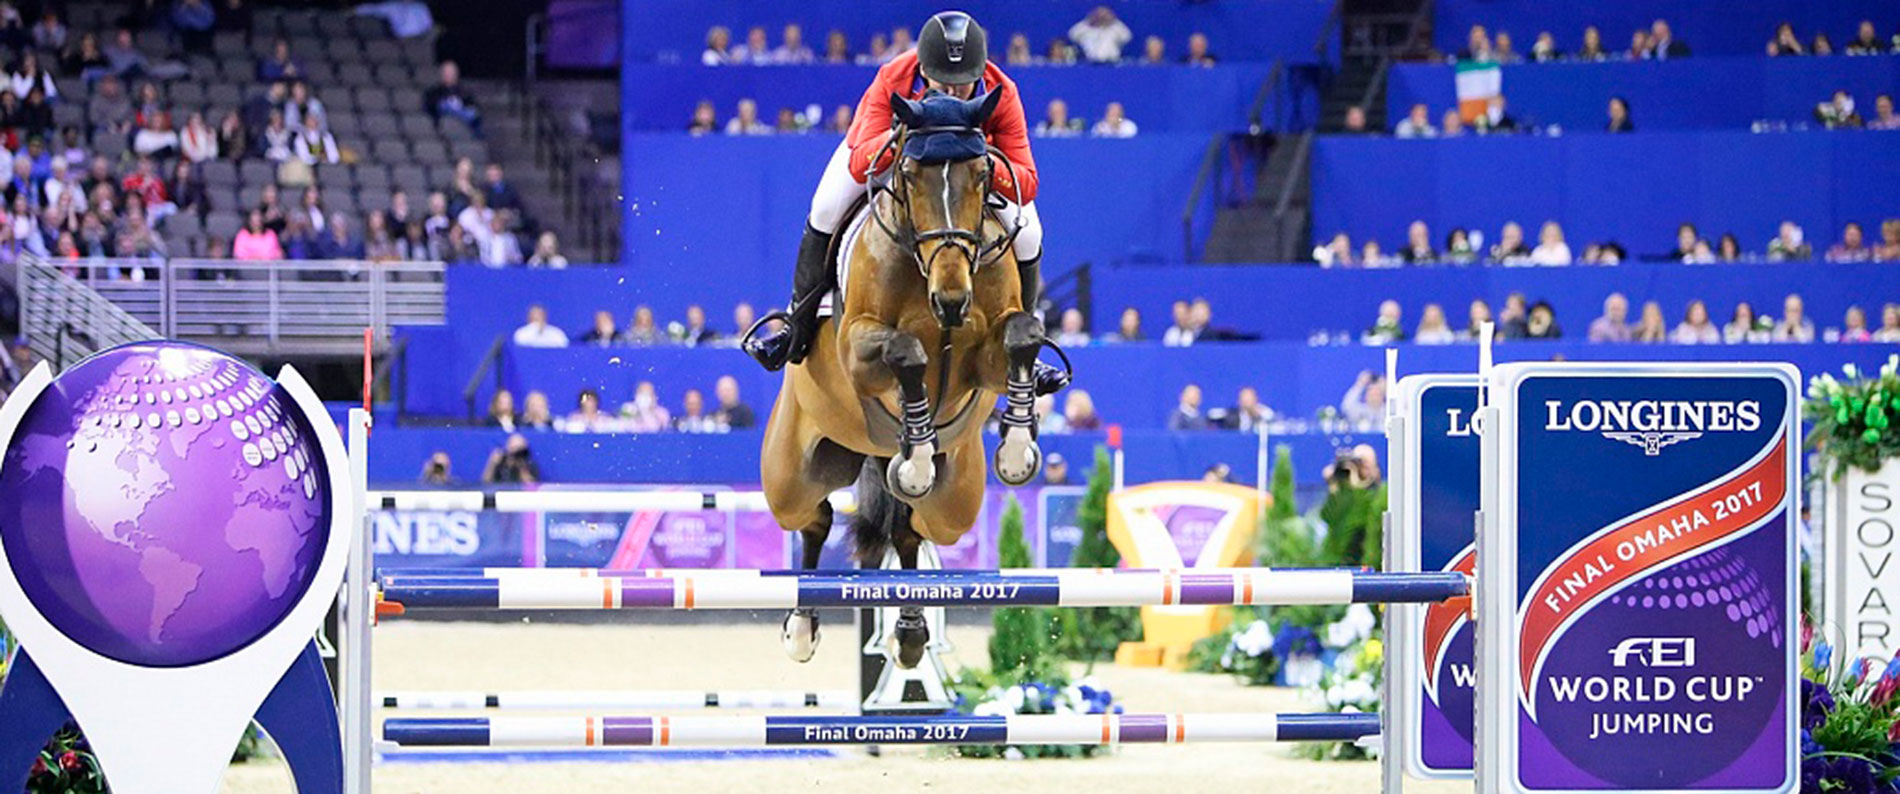 FEI World Cup 2017 Jumping